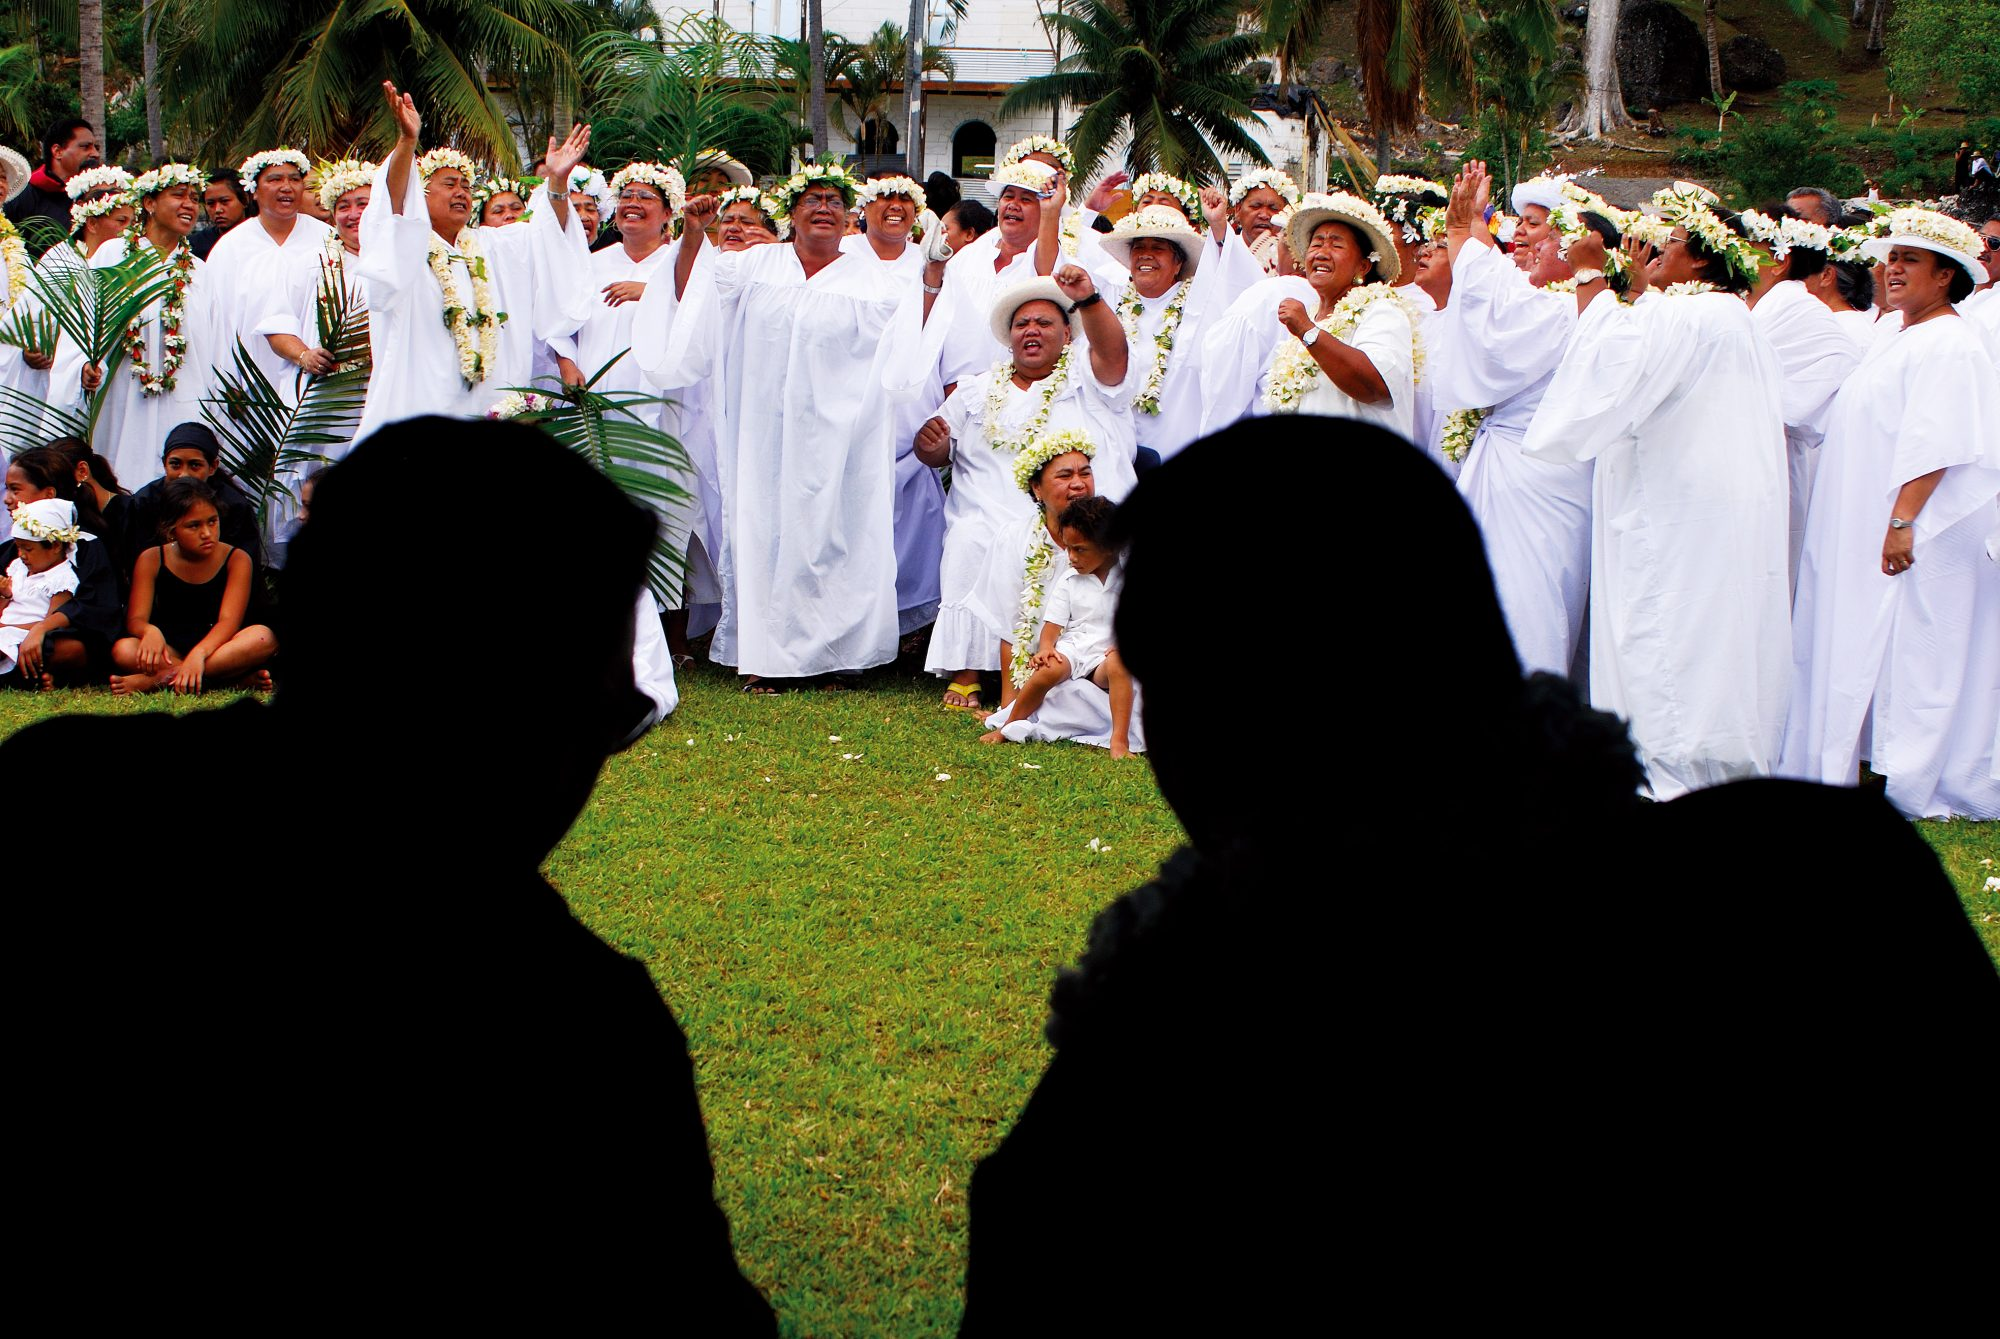 The national Gospel Day nuku, on October 26 each year, draws an assembly from each of the six parishes of the Cook Island Christian Church on Rarotonga. Gathering on the grounds of the Takamoa Theological College, they perform songs, pantomimes and biblical story re-enactments that recall the arrival of Christianity to the Cook Islands. 'Imene pure, church songs, are mostly English hymns translated to Cook Island Maori, while ' imene reo metua combine the tunes of German bar-room ballads with words drawn from the gospel. Members of the Avarua CICC congregation (left) entertain the crowds with a forceful ' imene tuki, a style of singing unique to the Cook Islands.